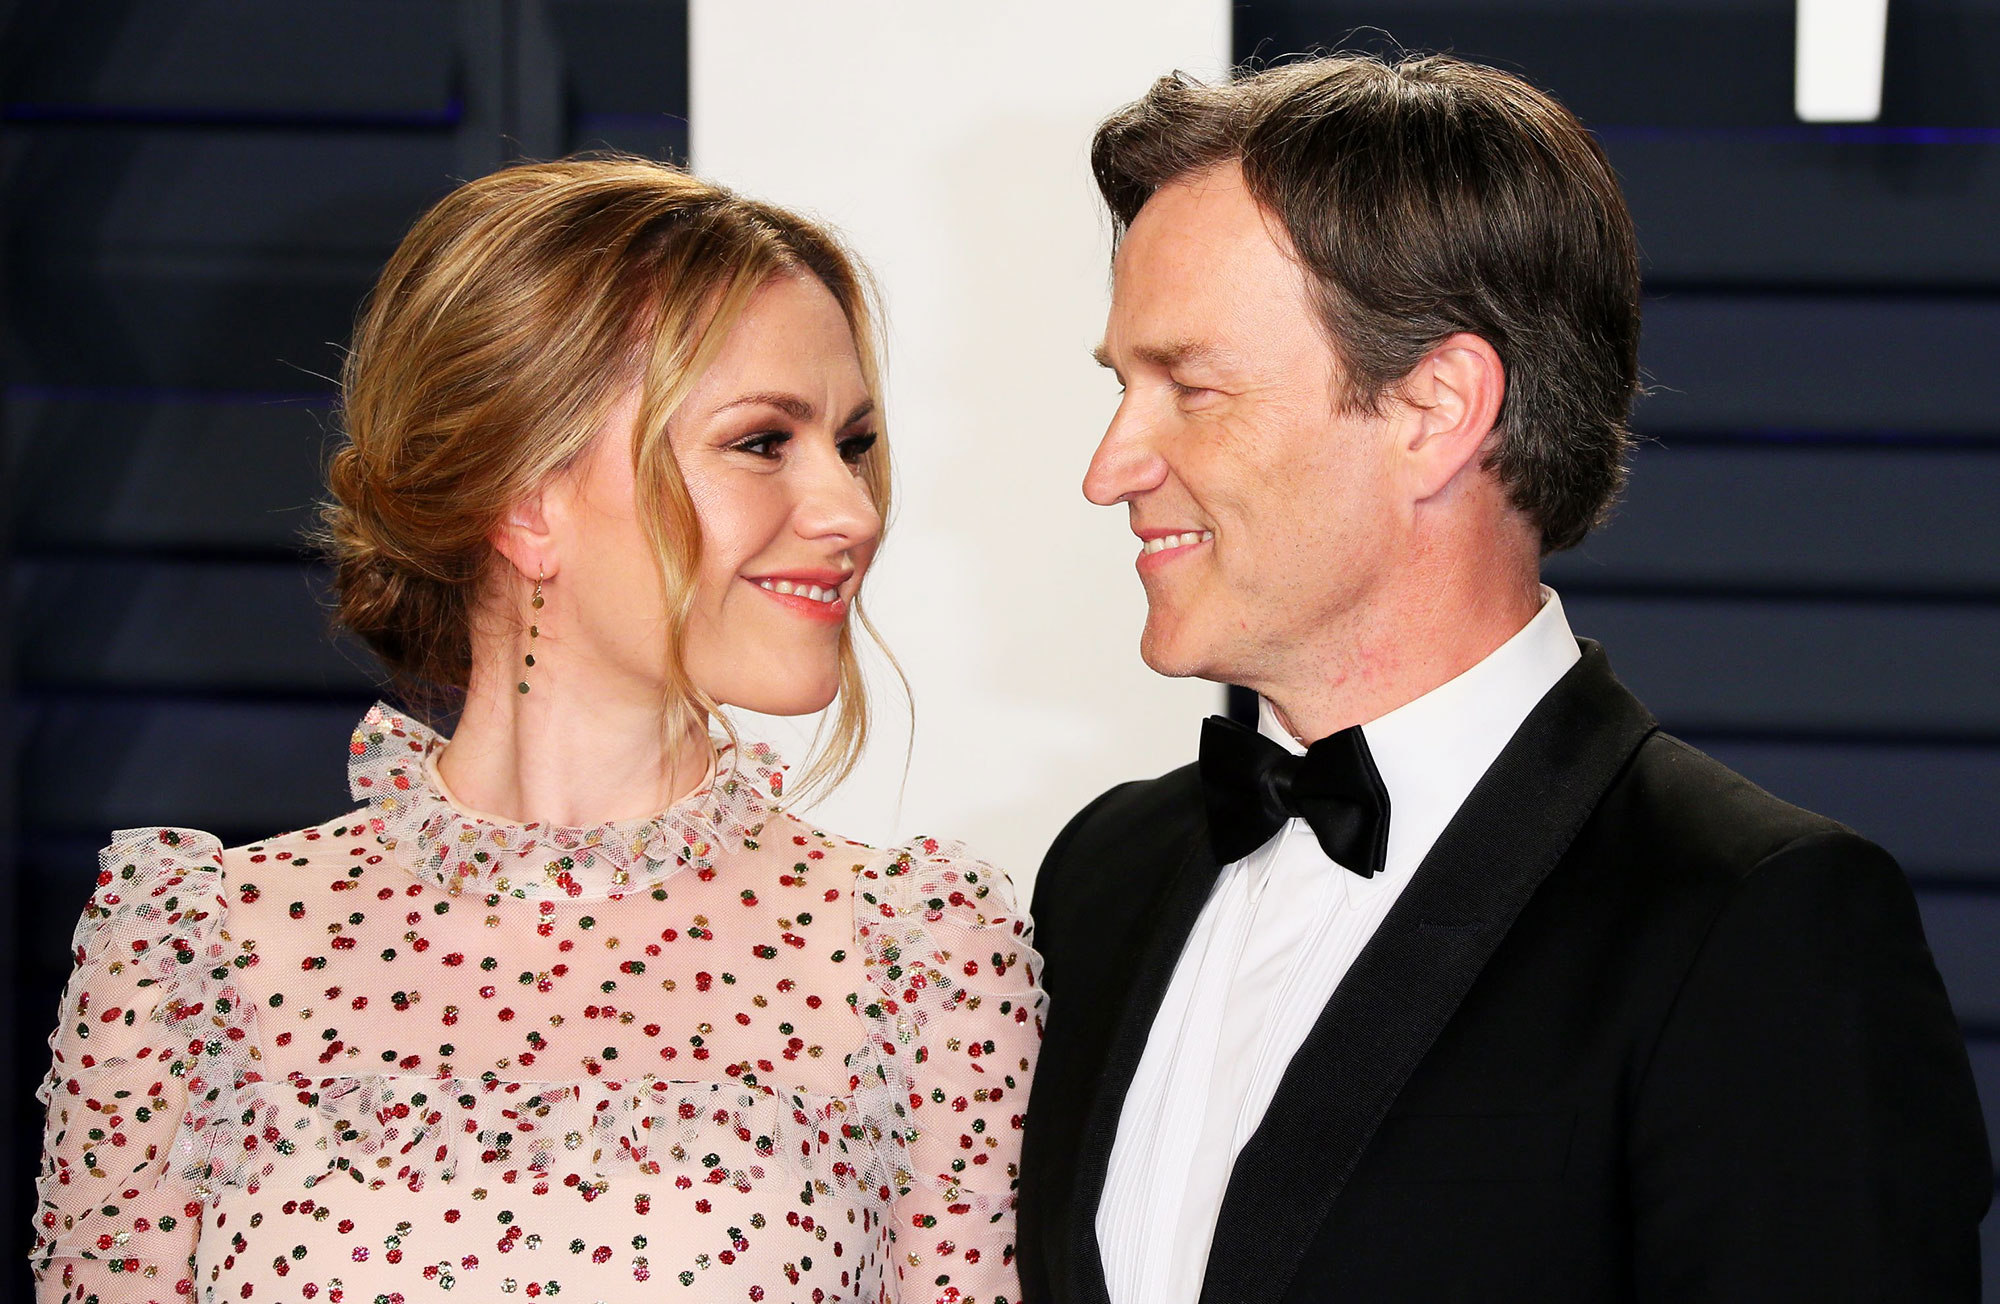 Anna Paquin Says She and Husband Stephen Moyer Are 'Best Friends' - Actress Anna Paquin and husband actor Stephen Moyer attend the 2019 Vanity Fair Oscar Party following the 91st Academy Awards at The Wallis Annenberg Center for the Performing Arts in Beverly Hills on February 21, 2019.